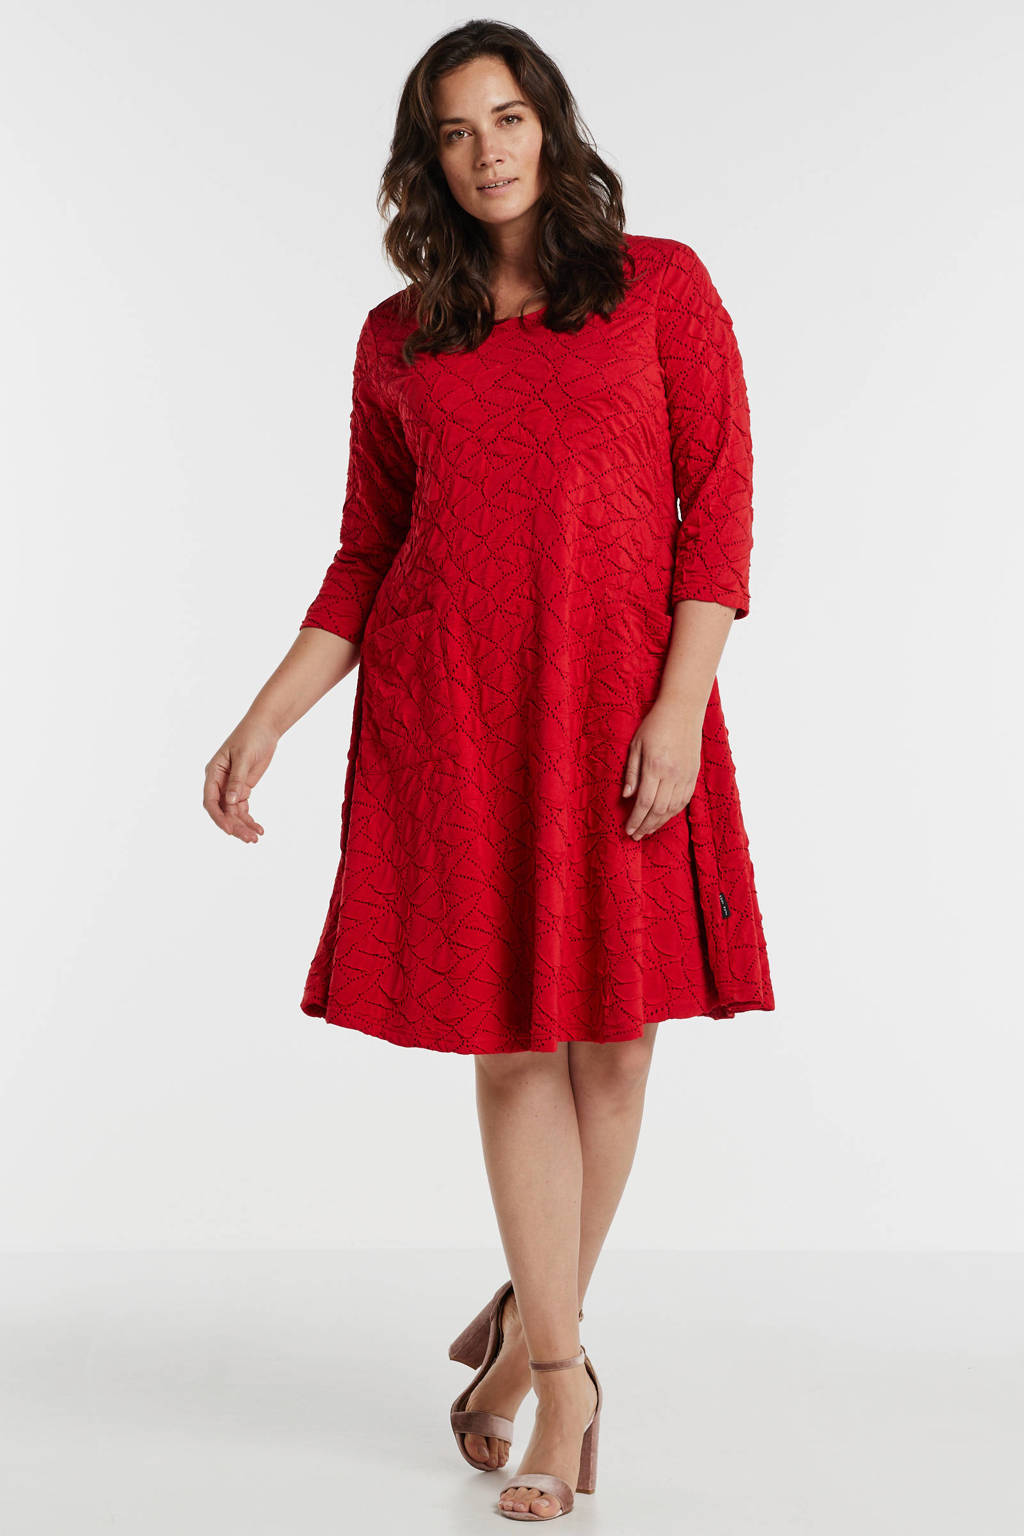 PONT NEUF jersey jurk Kitty met all over print en textuur rood, Rood